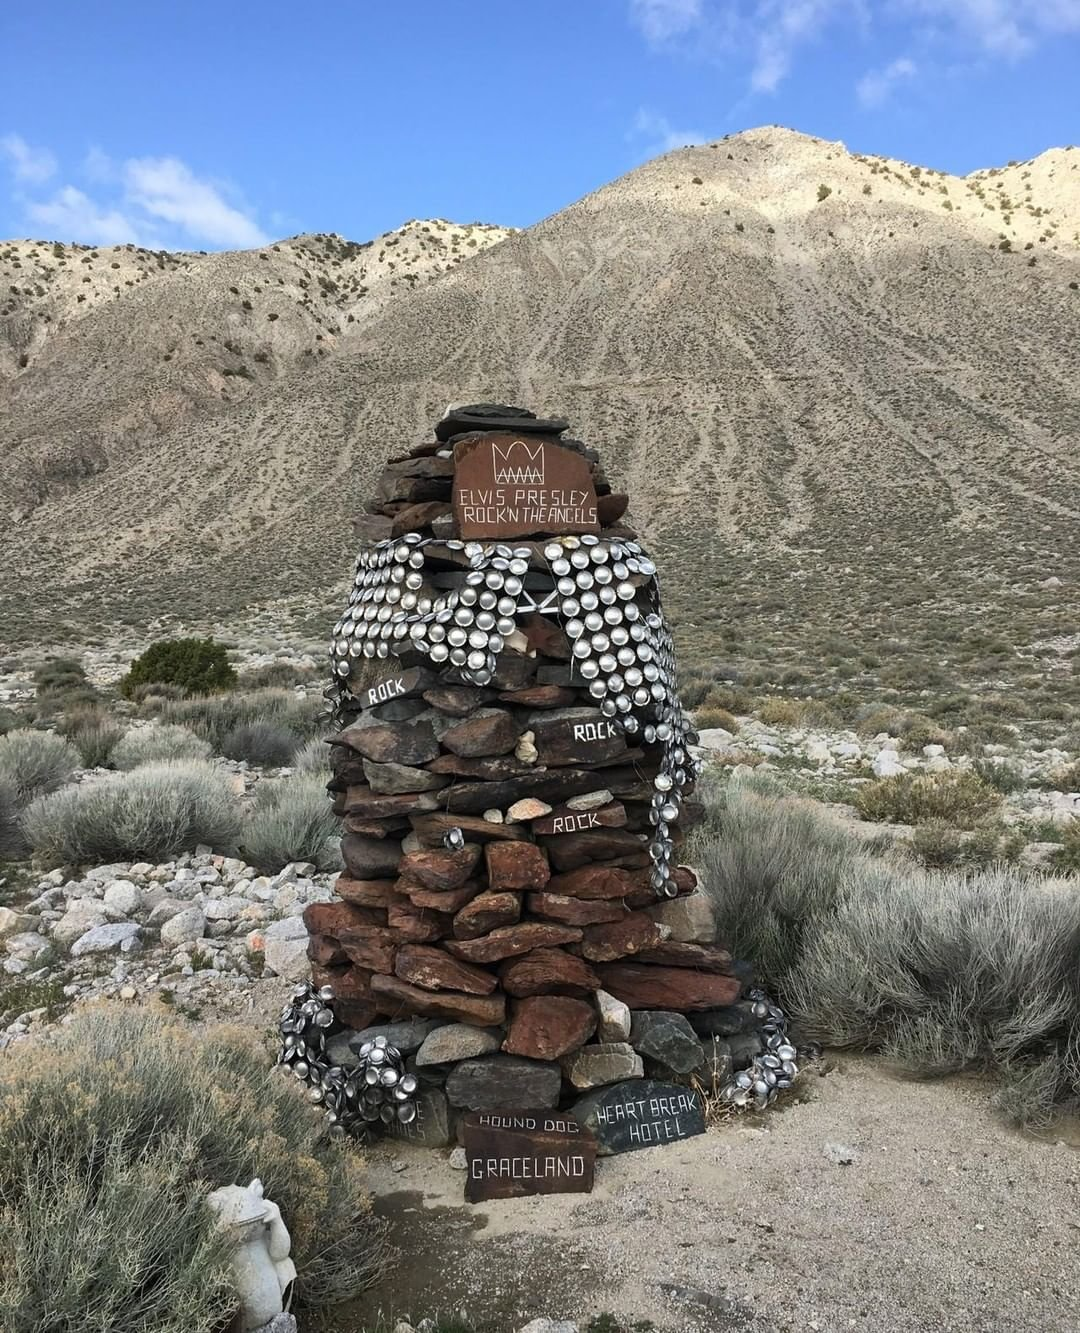 #ElvisLives! Here he is hanging out on #gururoad. We'll be visiting him on April 28 to clean up his #cape and take care of his neighbors. What's your favorite piece of #folkart? #fbrhr #blackrockdesert #elvis #theking #graceland #doobielane #gerlach #northernnevada #burnerbyway